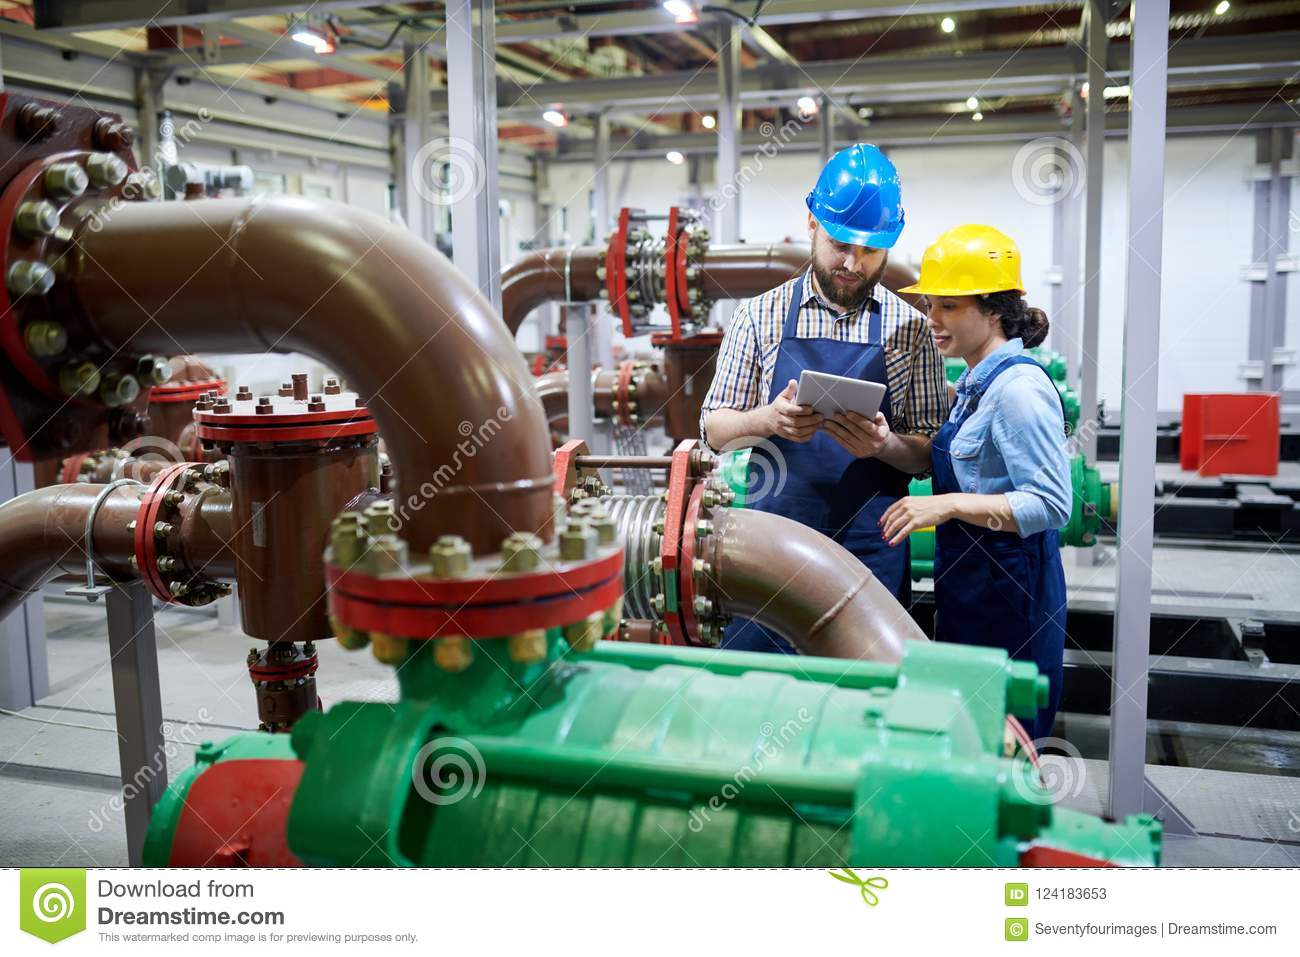 Workers in Purification System